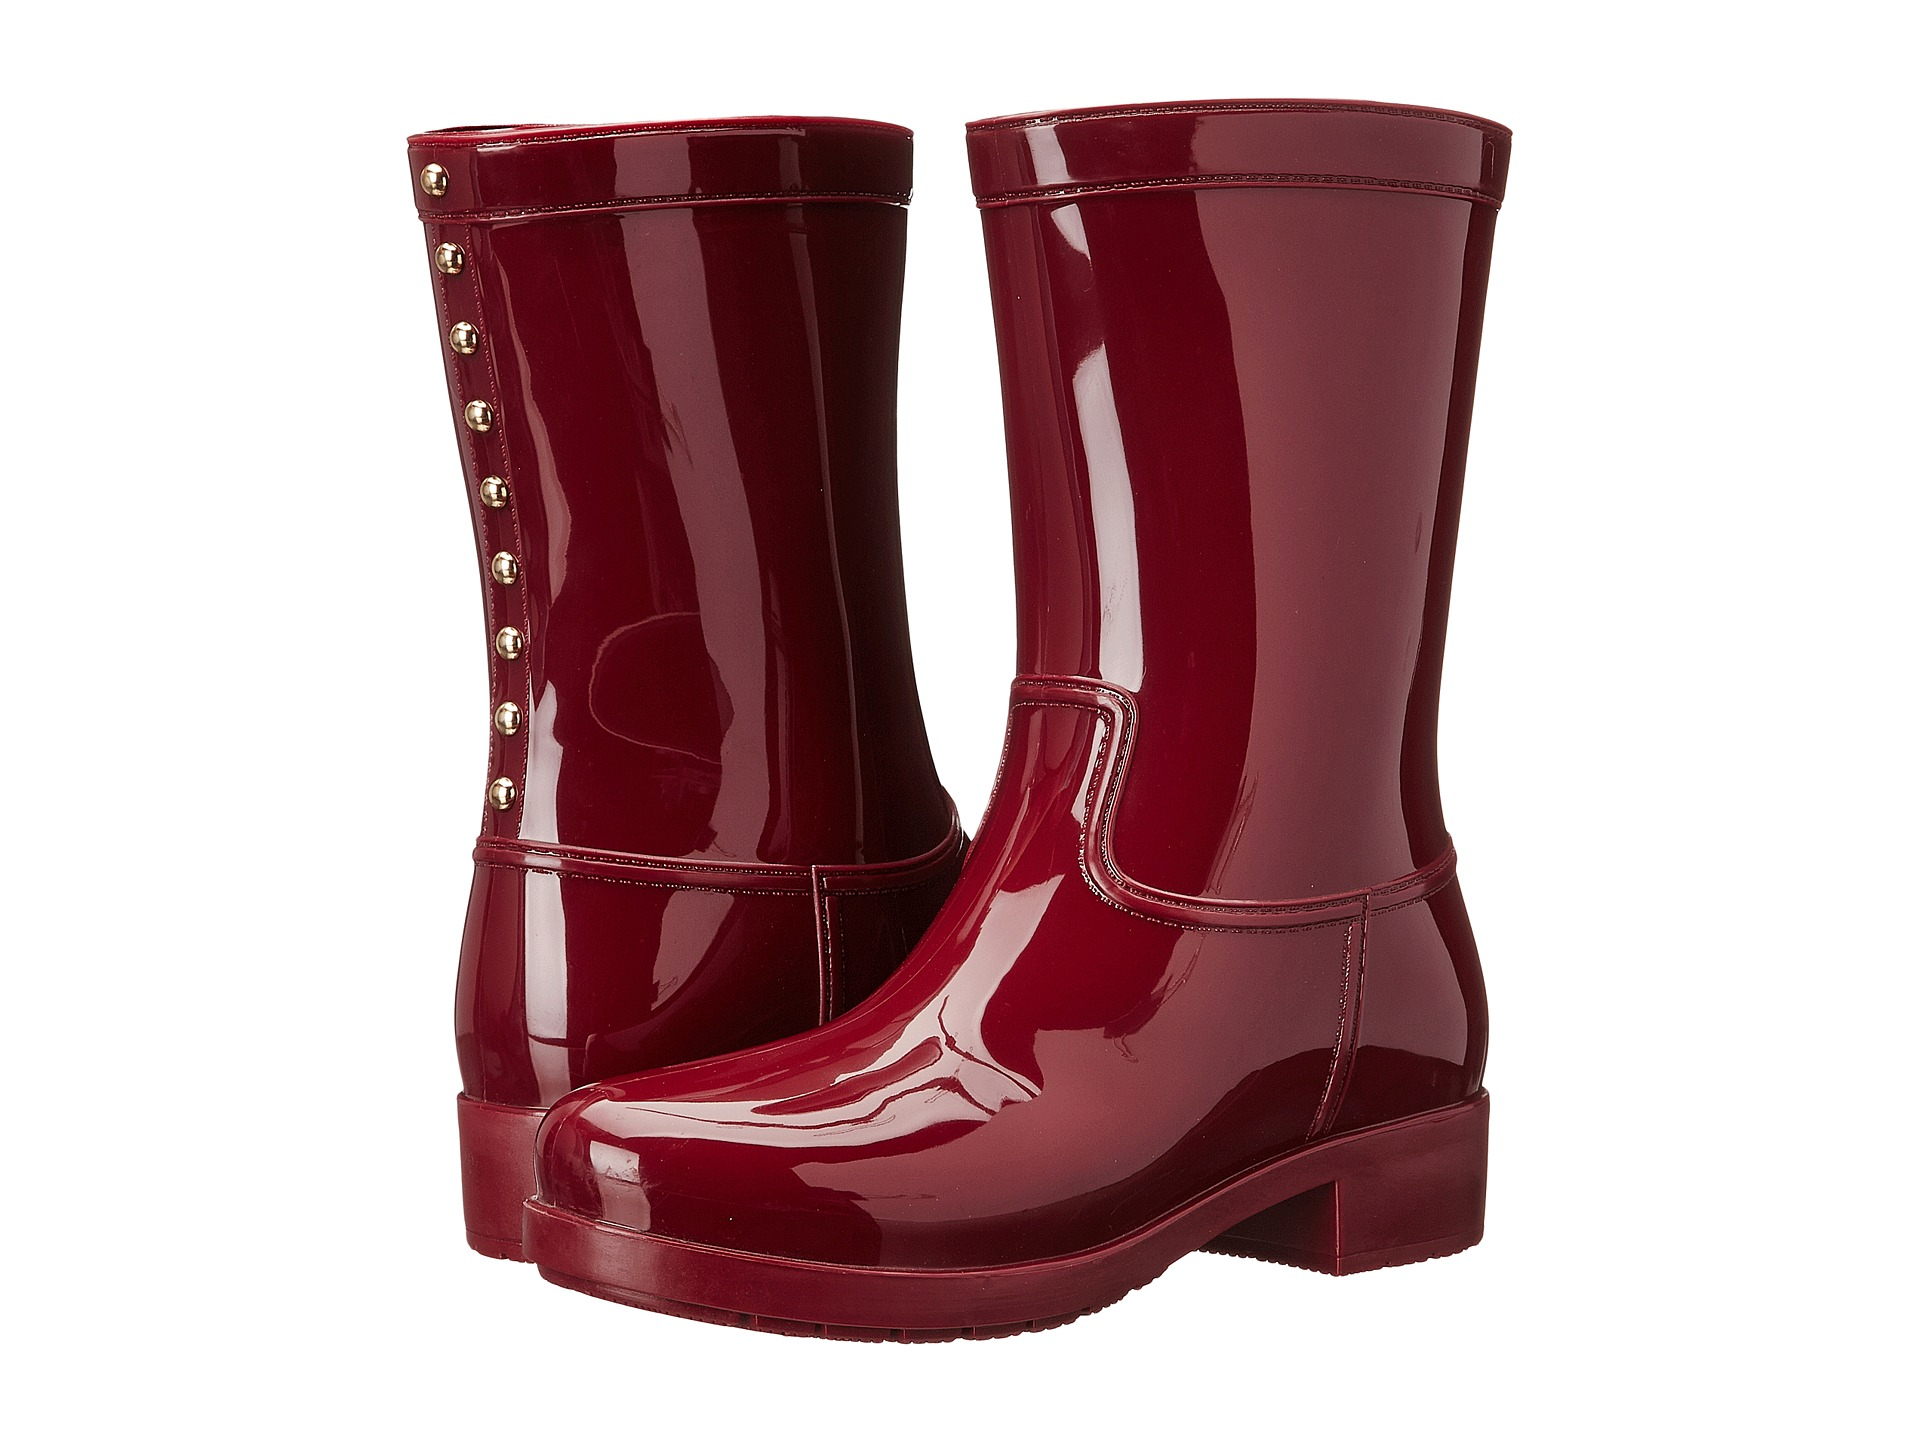 Cheap Womens Boots ALDO Wenade Fuchsia on sale